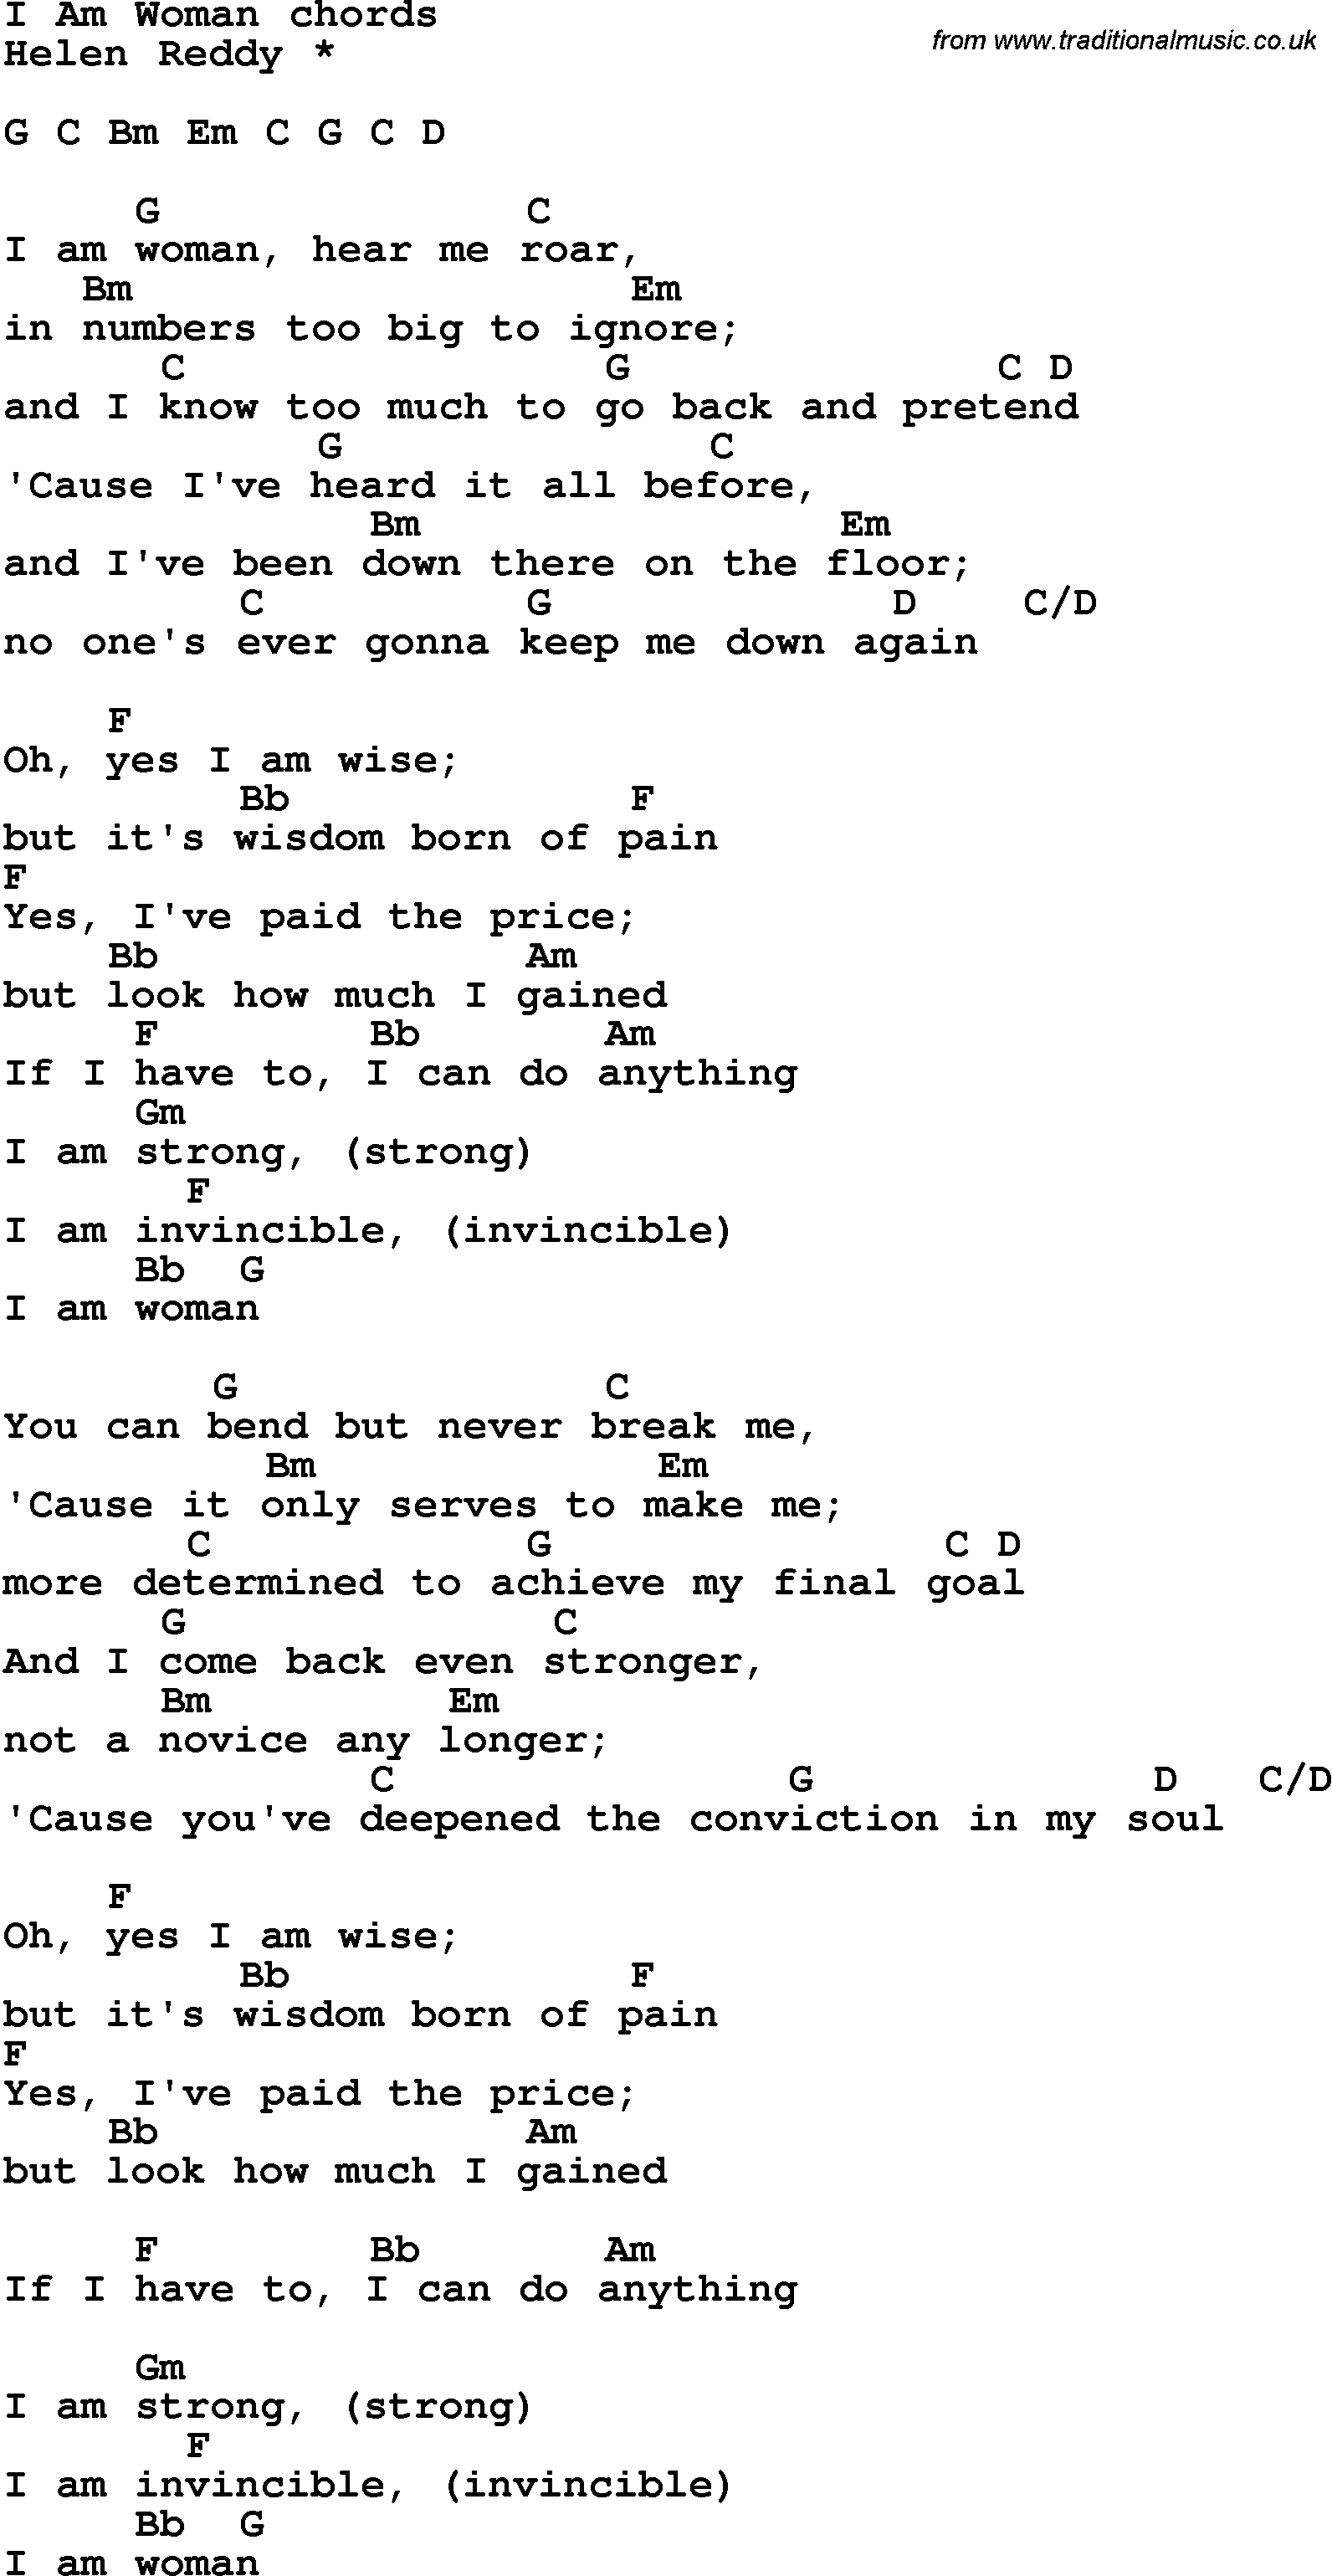 Song Lyrics With Guitar Chords For I Am Woman